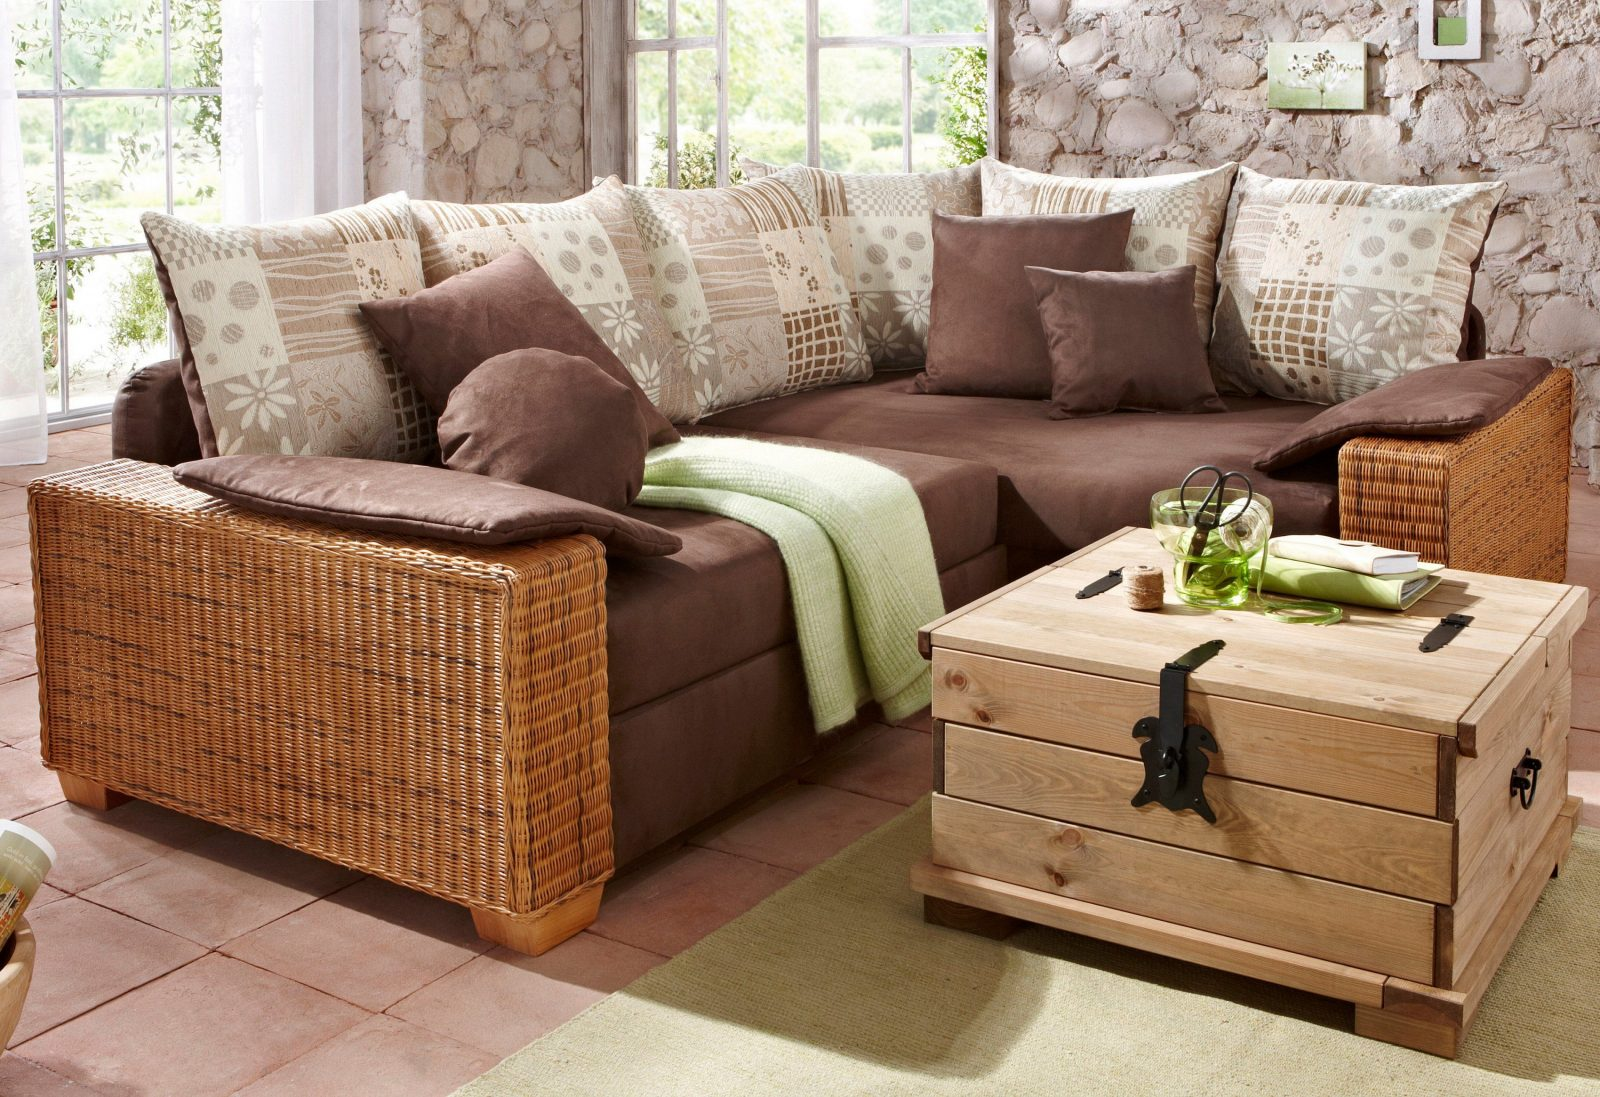 Rattan Sofa Outdoor Mit Dach Rattan Sofa Mit Bettfunktion